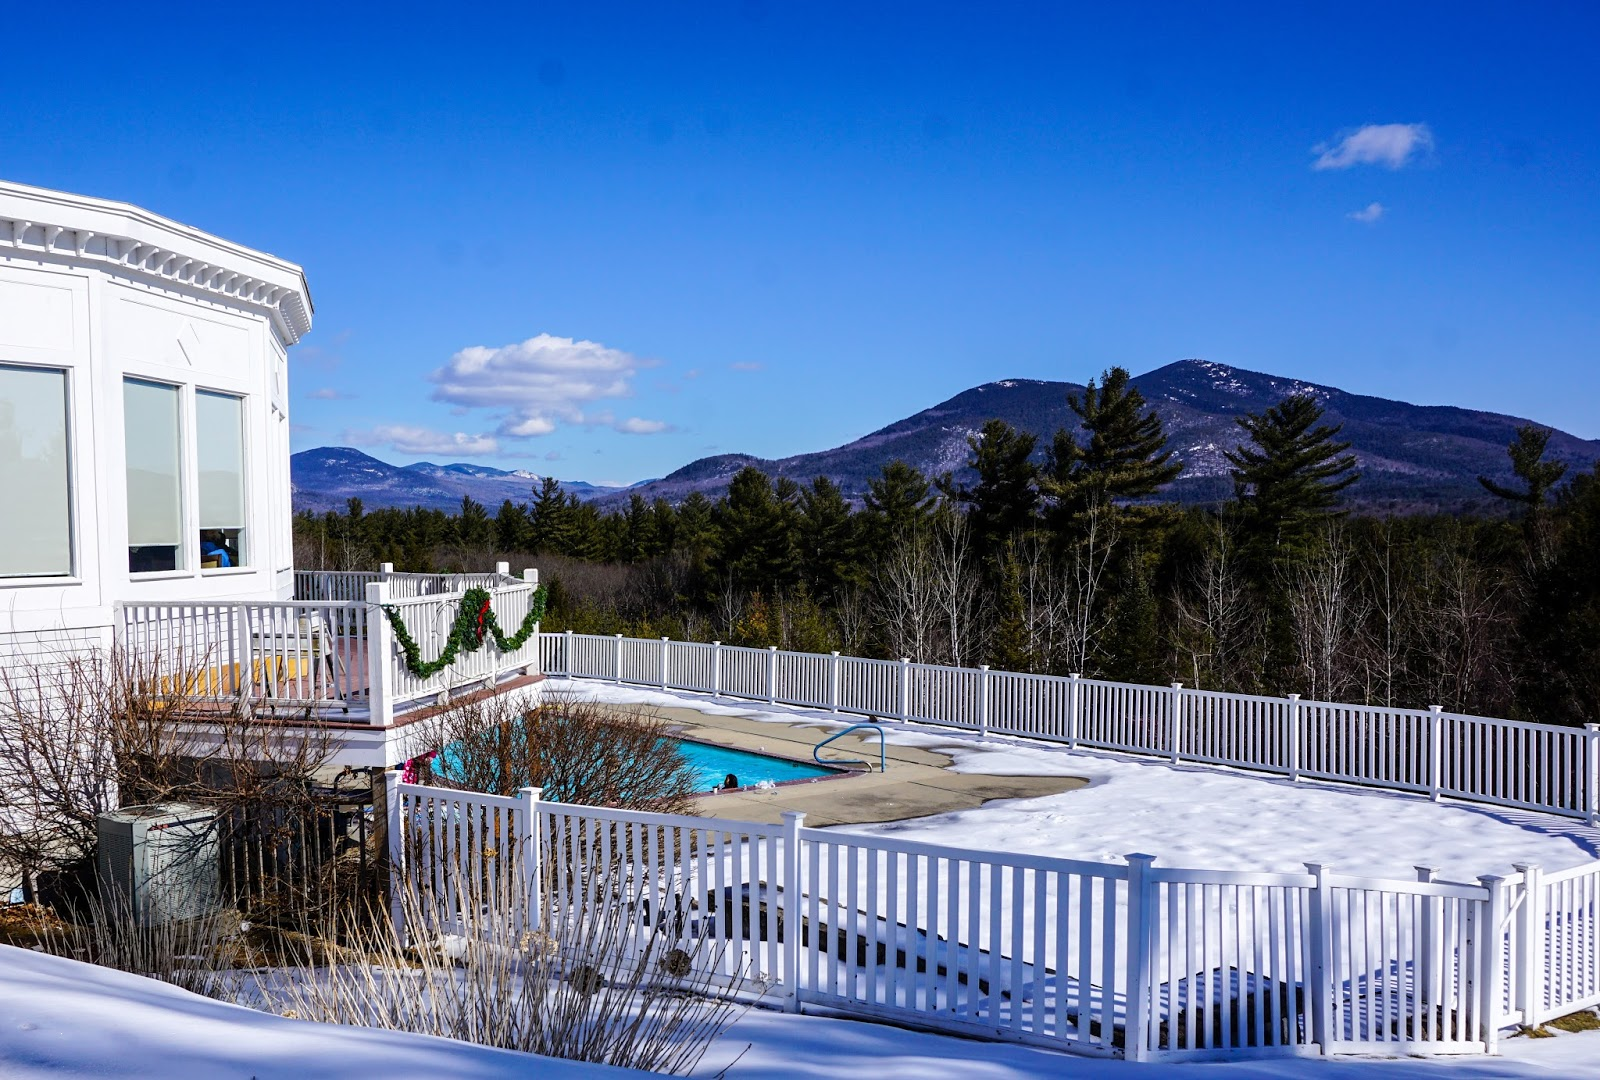 Hotels With Jacuzzi In Room In Framingham Ma